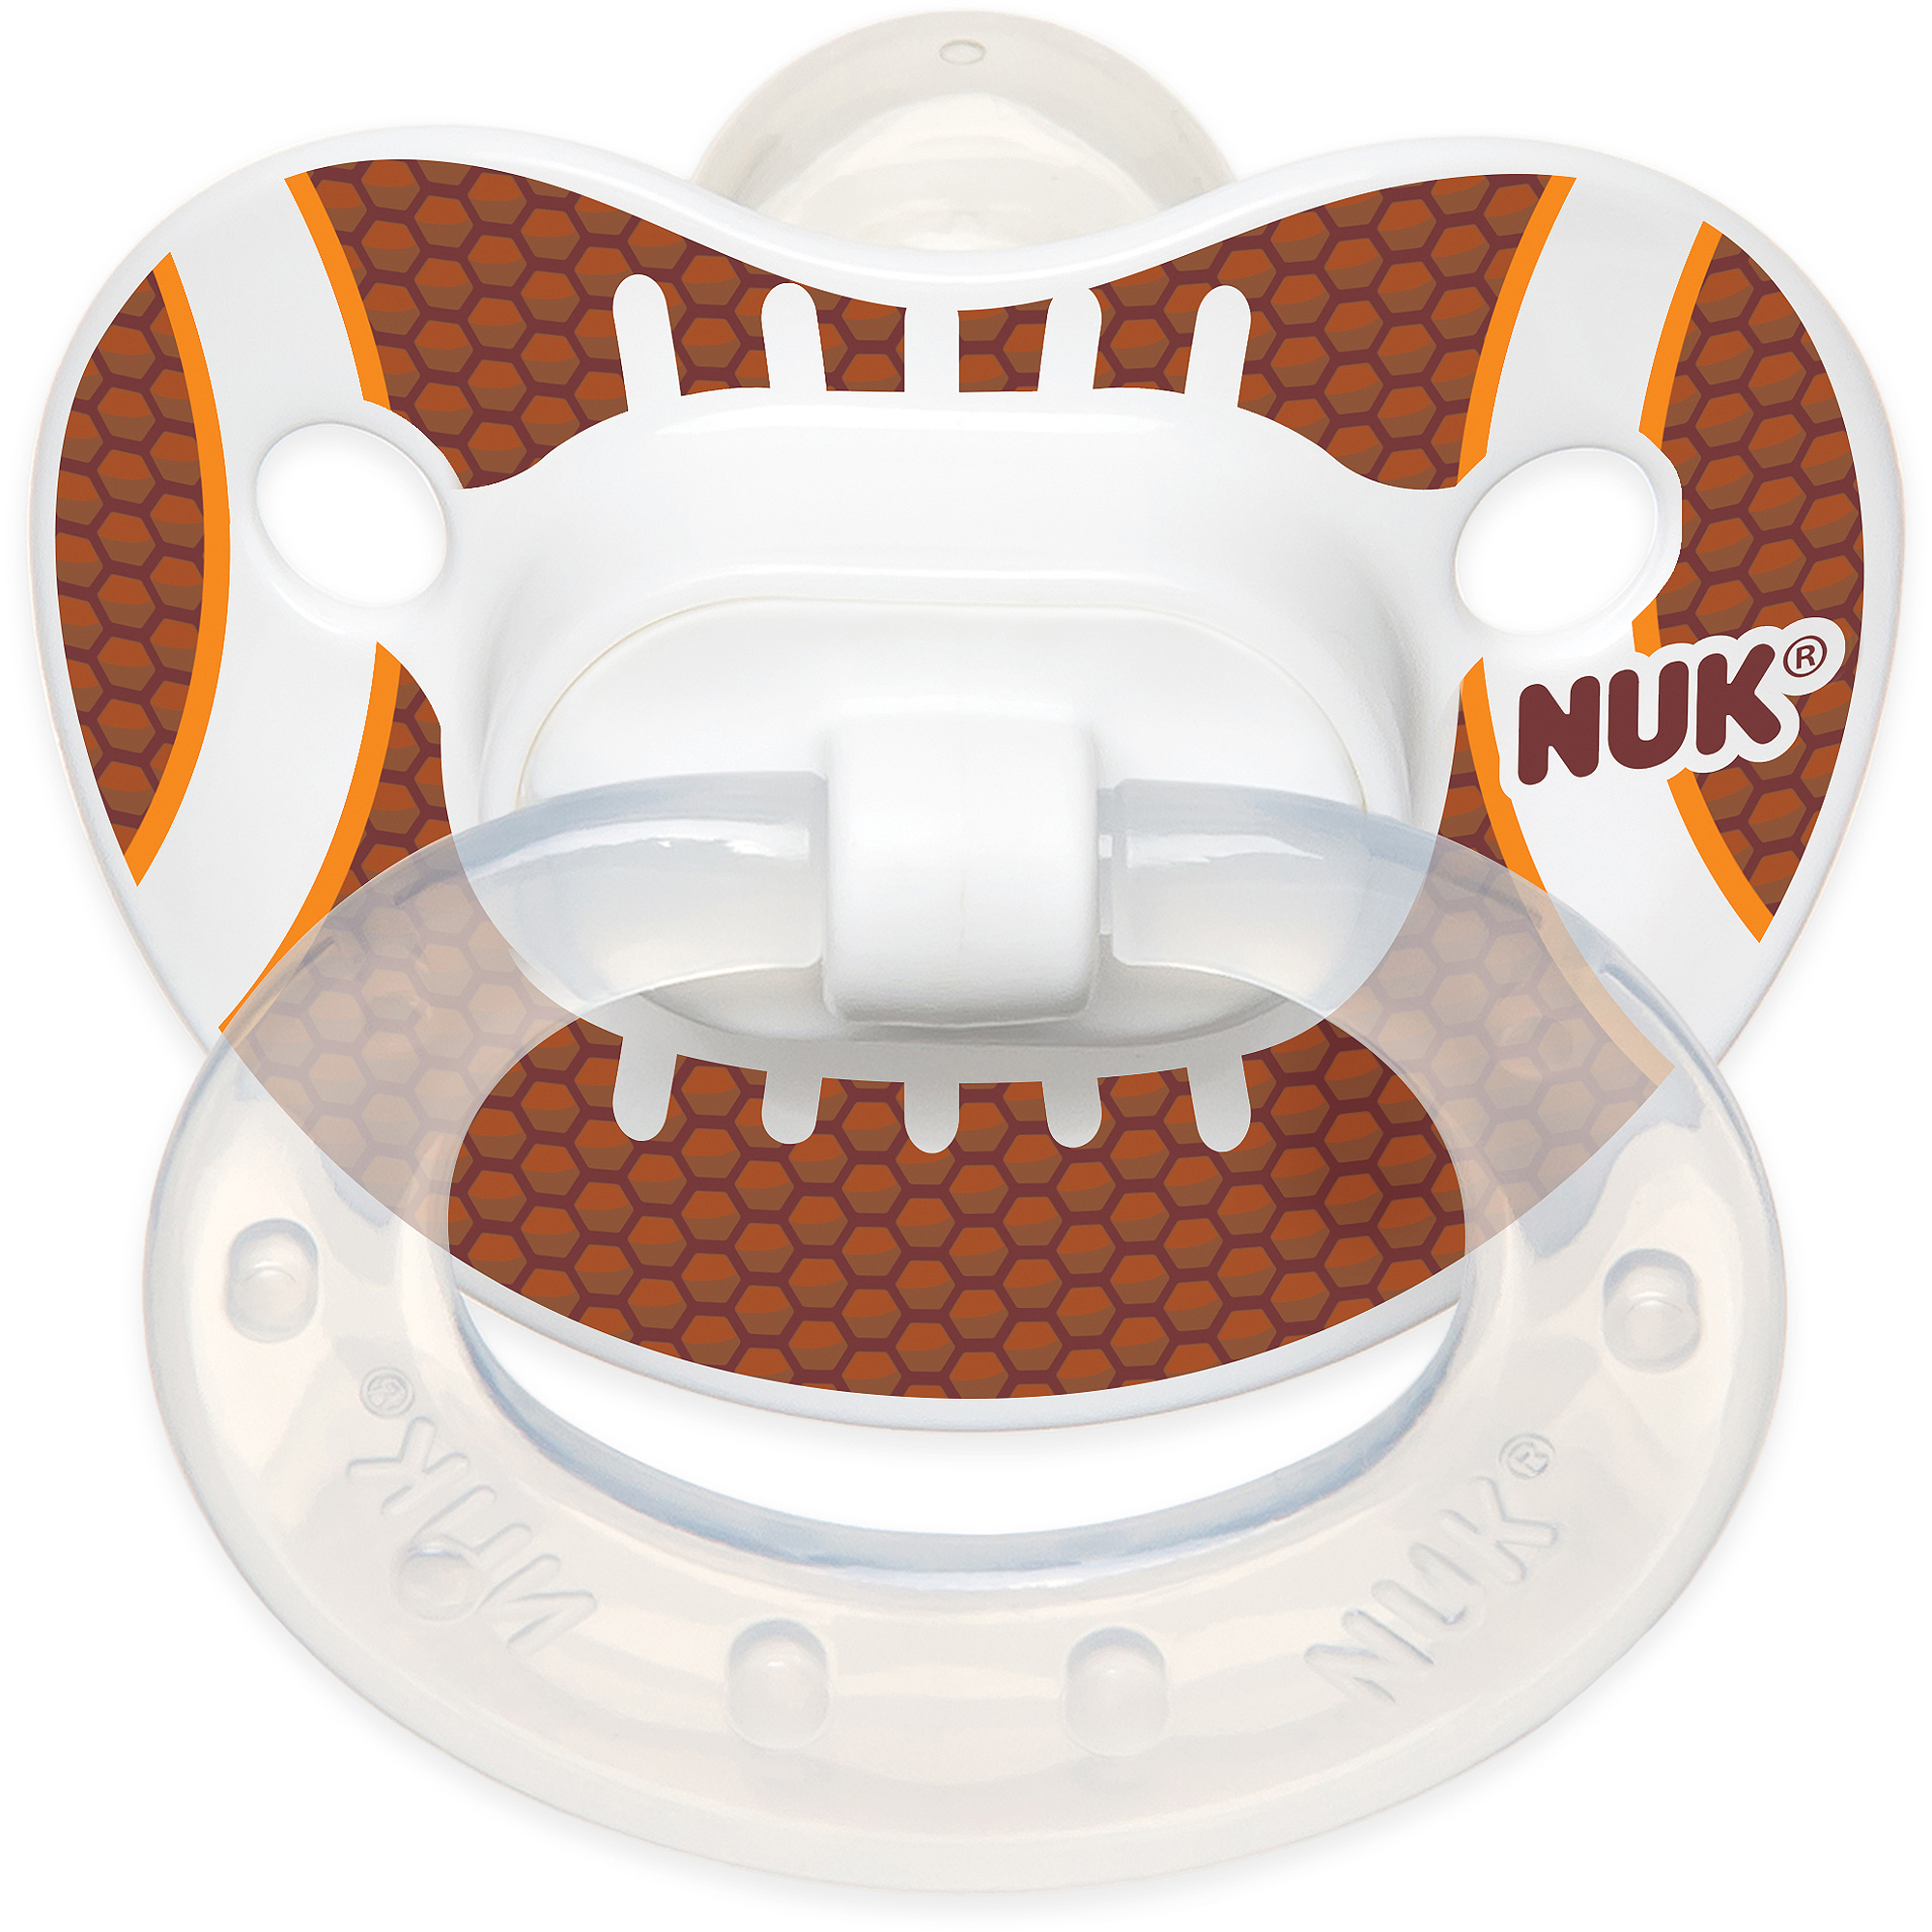 NUK Sports Silicone Orthodontic Pacifiers, 2ct, 0-6 months, BPA-Free (Design May Vary)